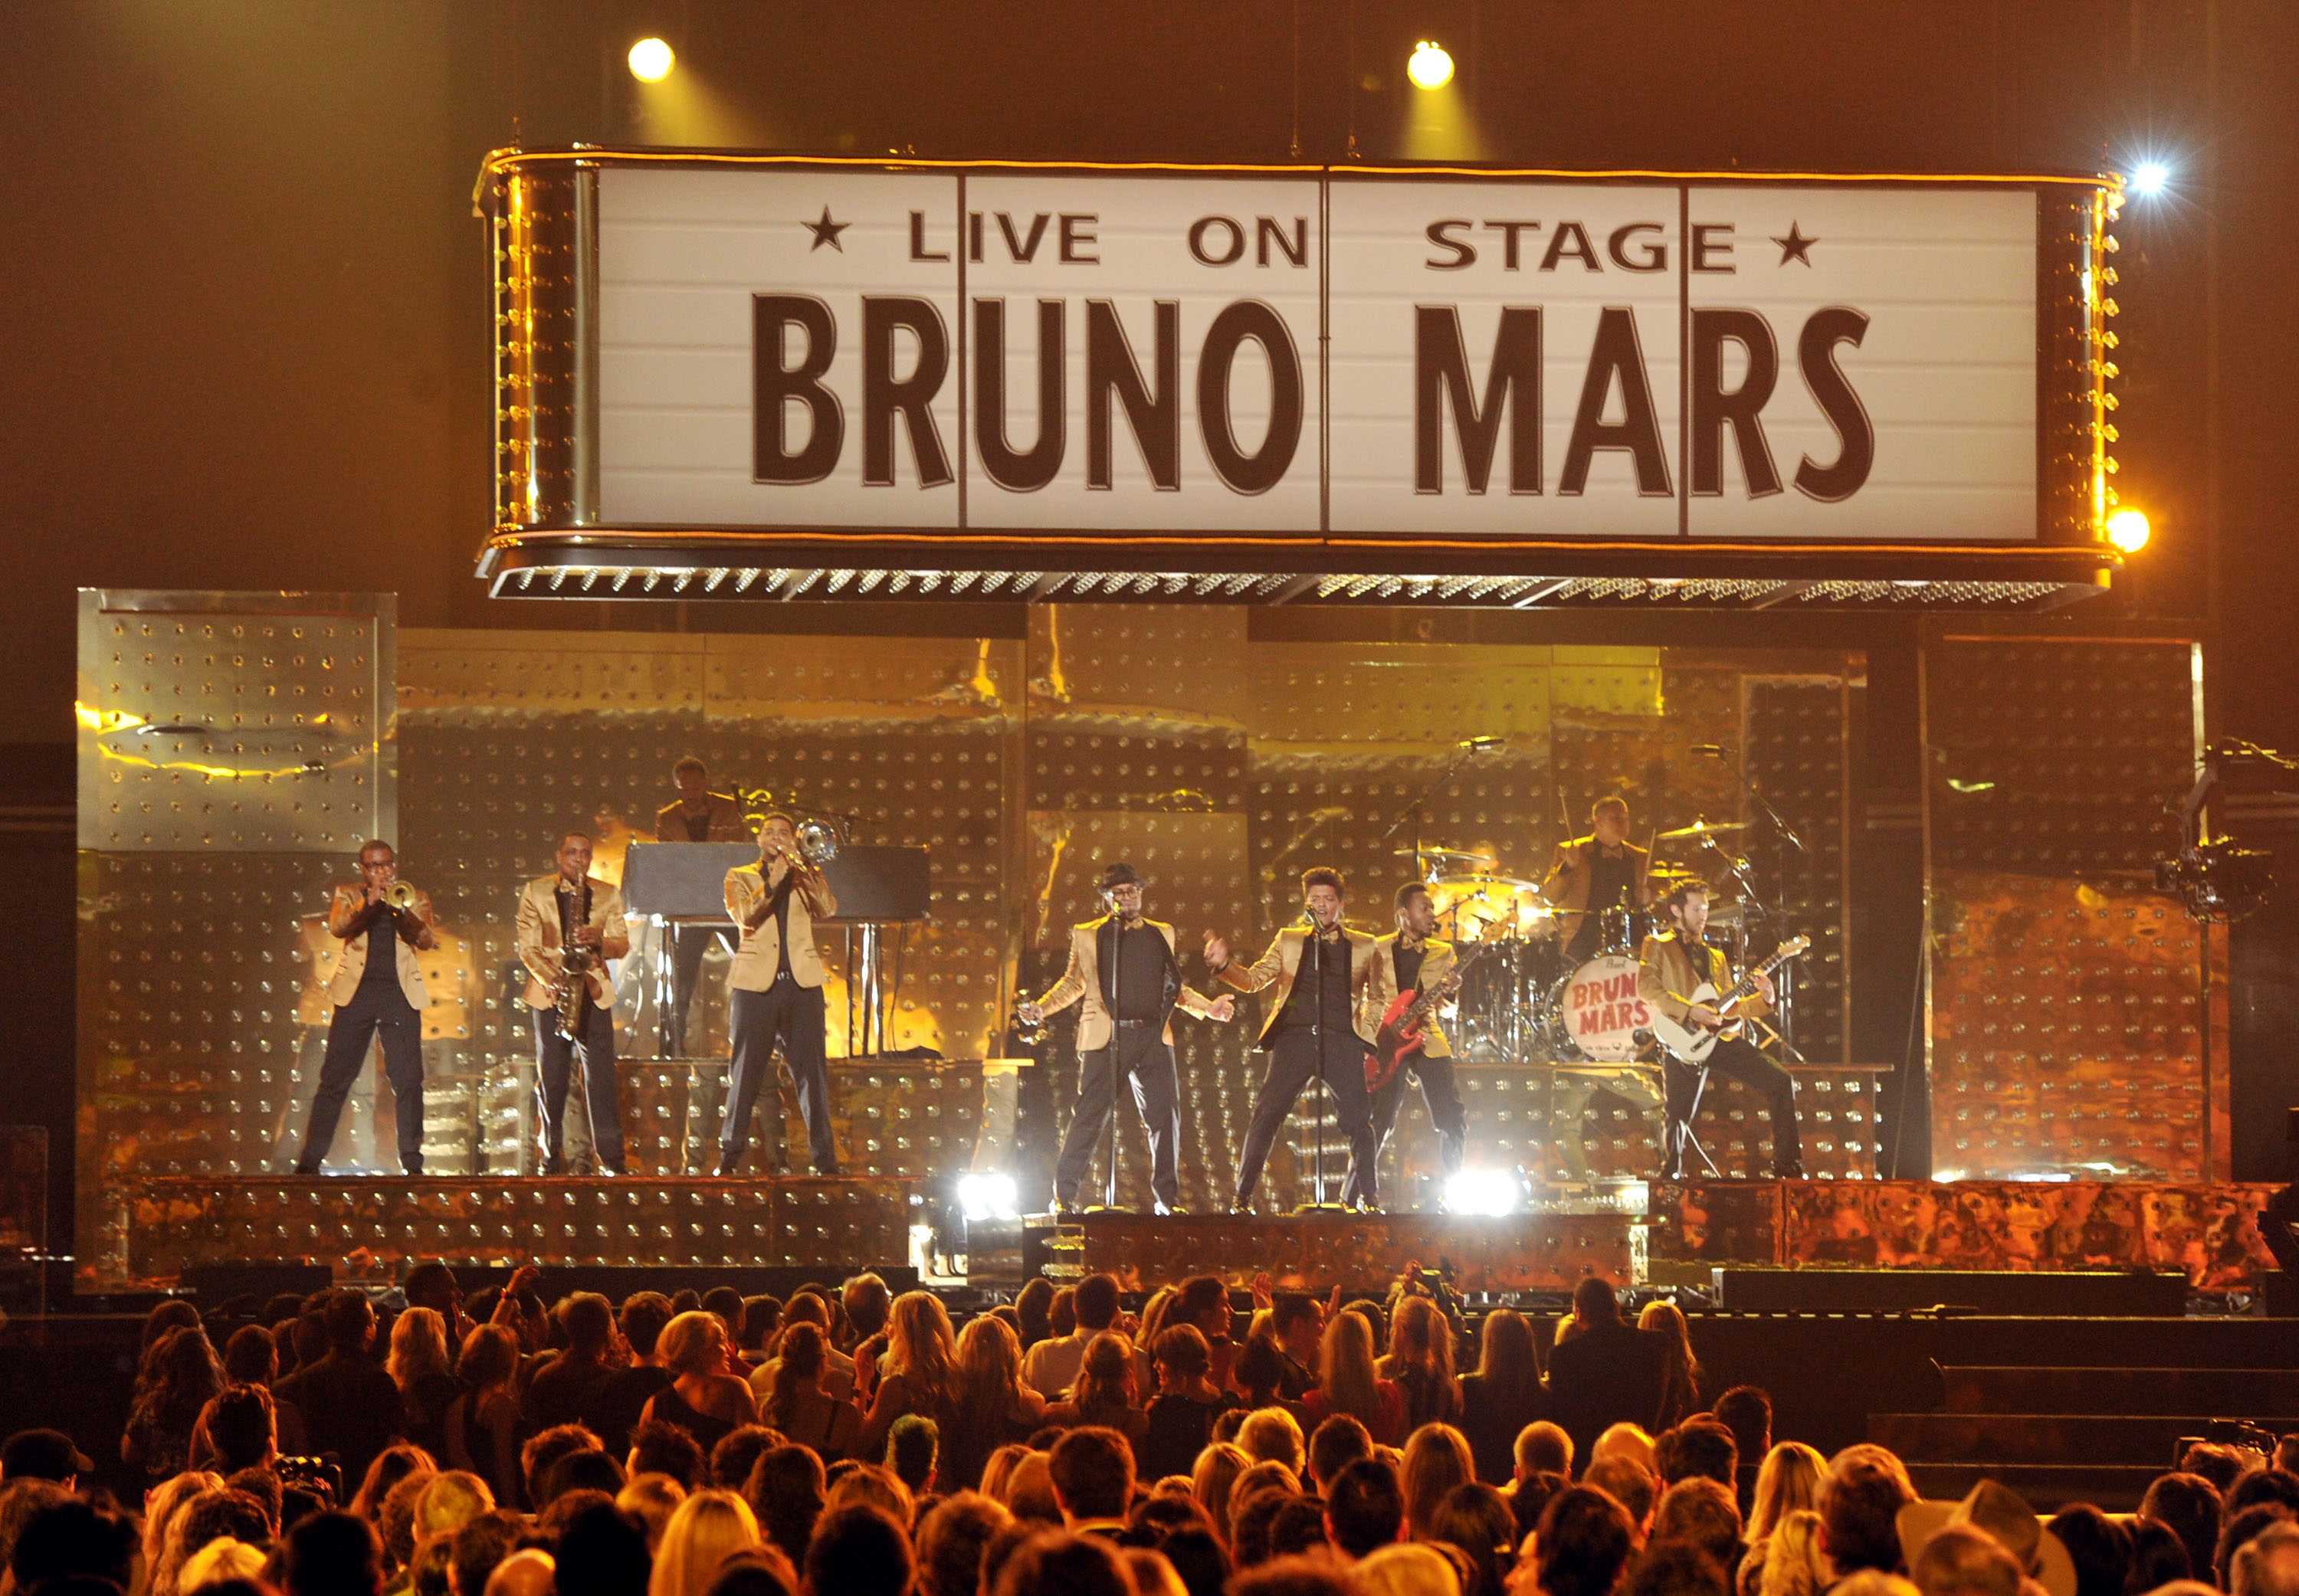 Bruno Mars was one of the first performances of the night.